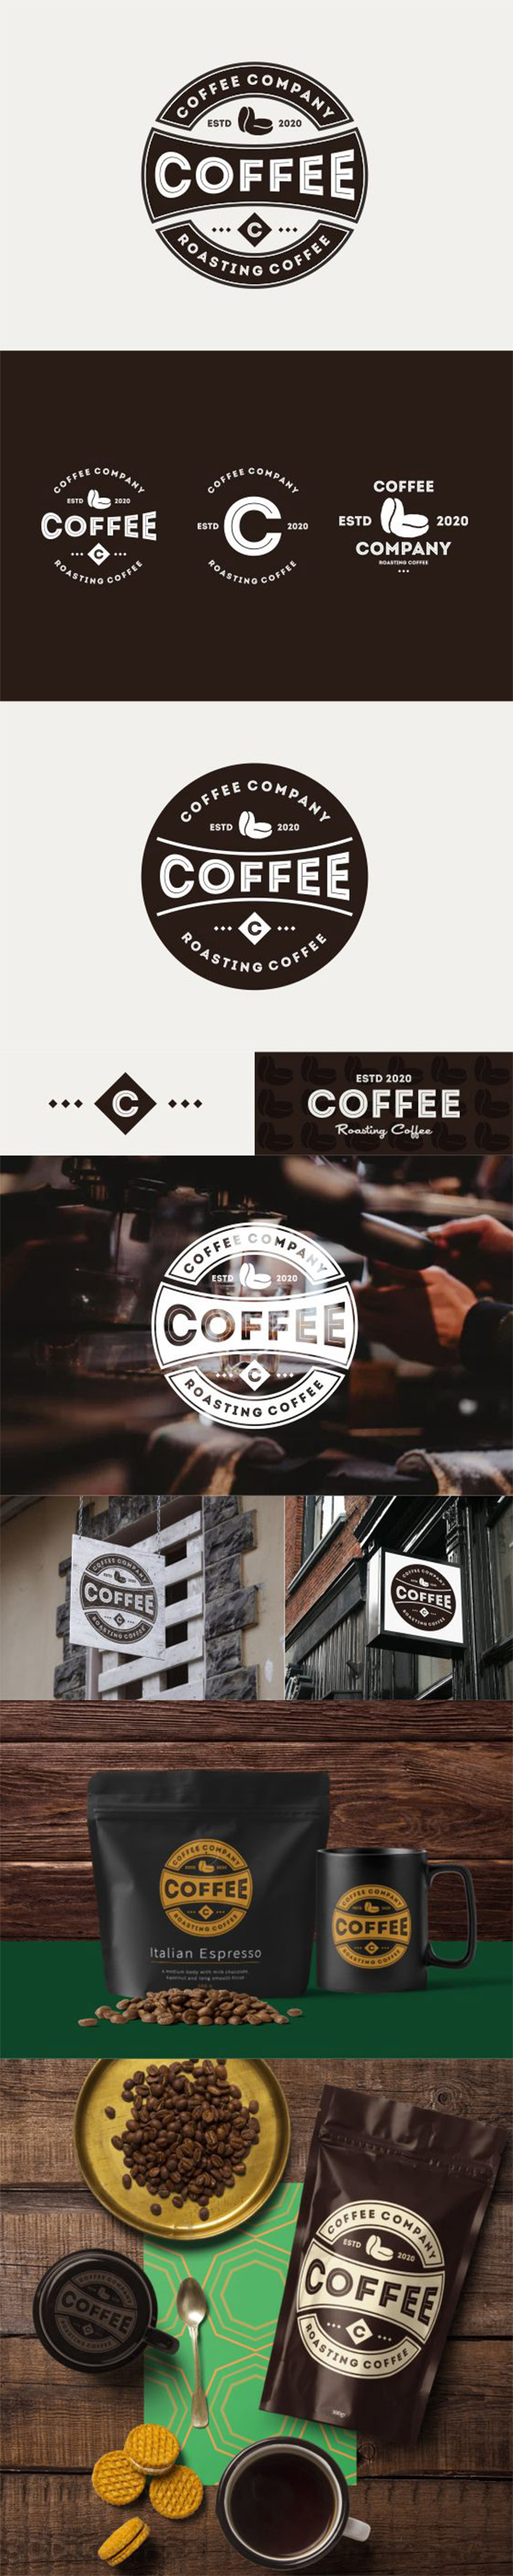 Coffee Company Badges Logo Design